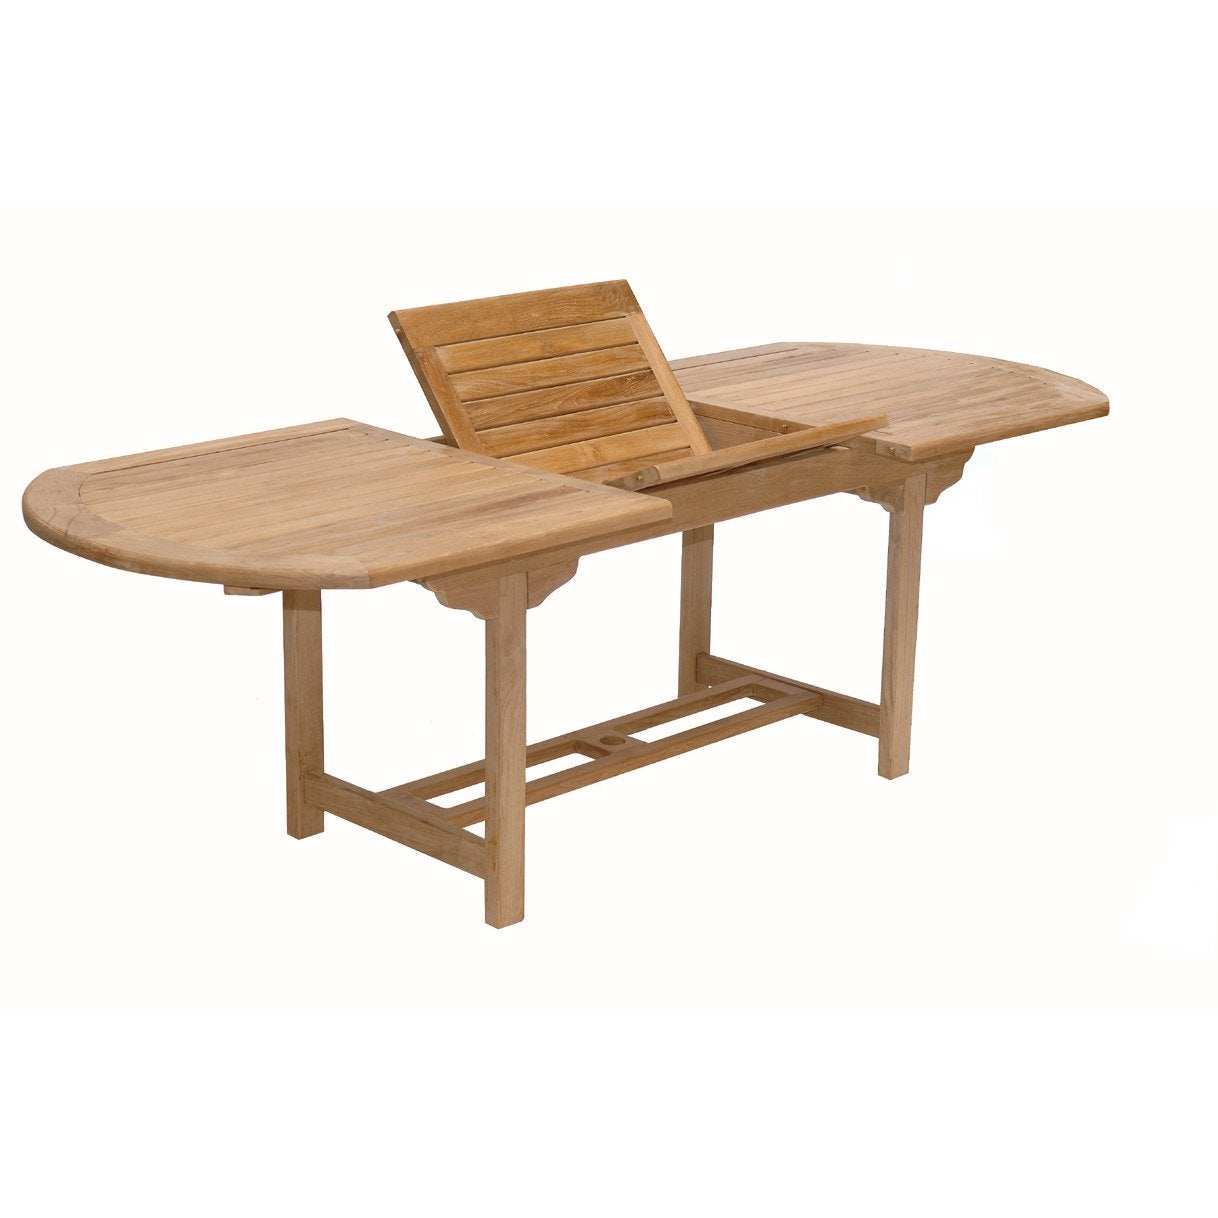 Table de jardin azur ovale naturel 8 personnes leroy merlin for Leroy merlin table jardin